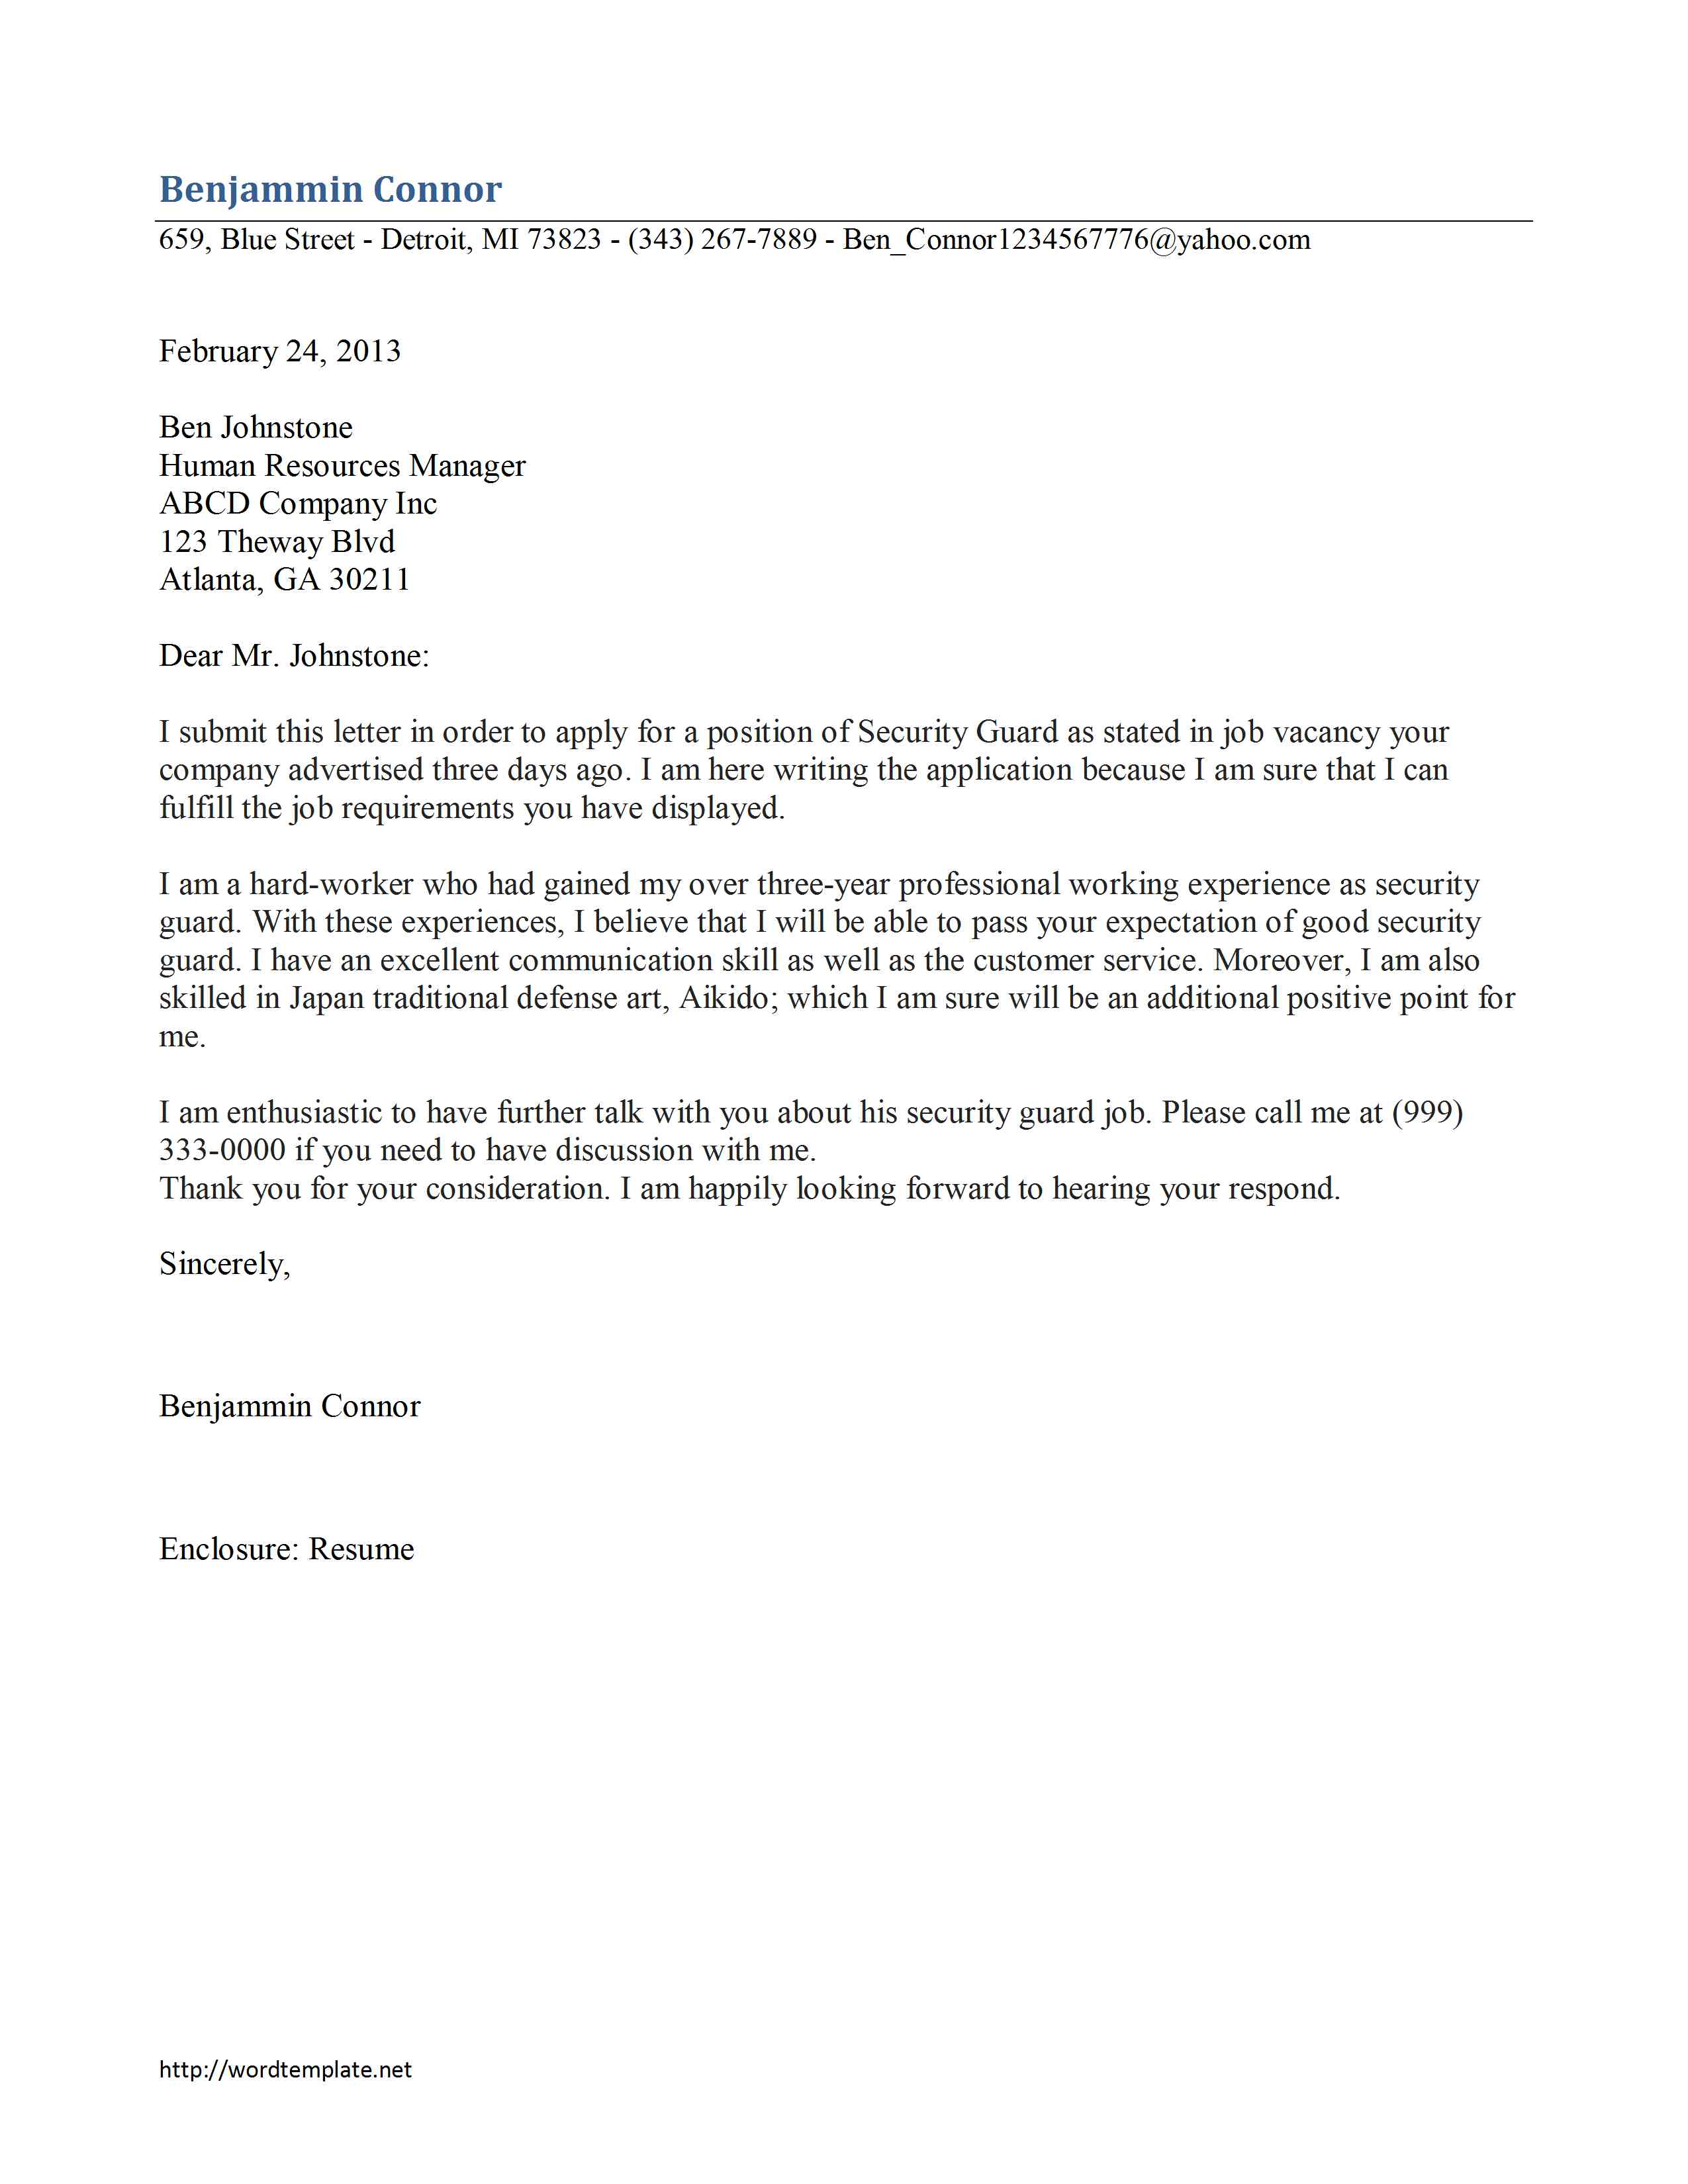 Security Guard Cover Letter Template